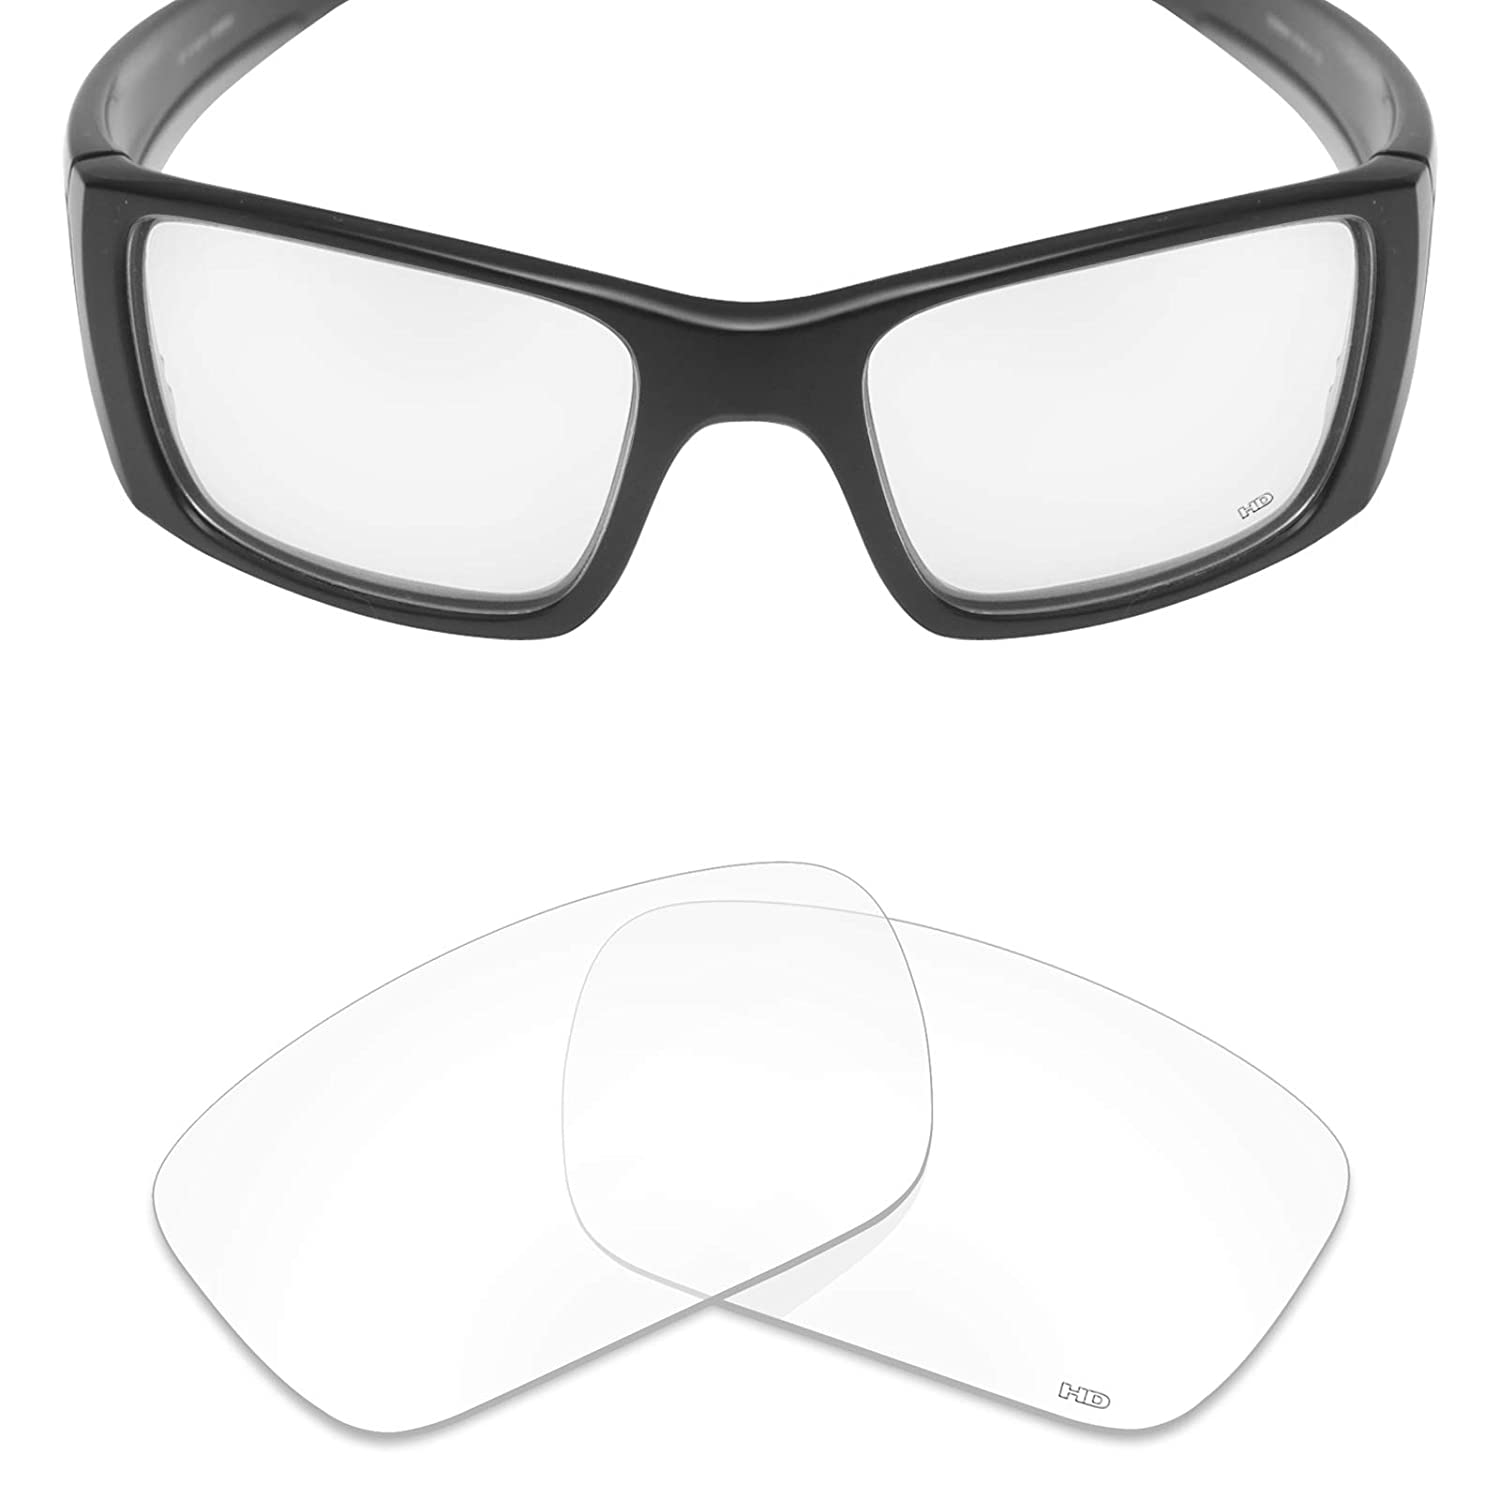 91b92adc0f097 Amazon.com  Mryok+ Polarized Replacement Lenses for Oakley Fuel Cell - HD  Clear  Clothing